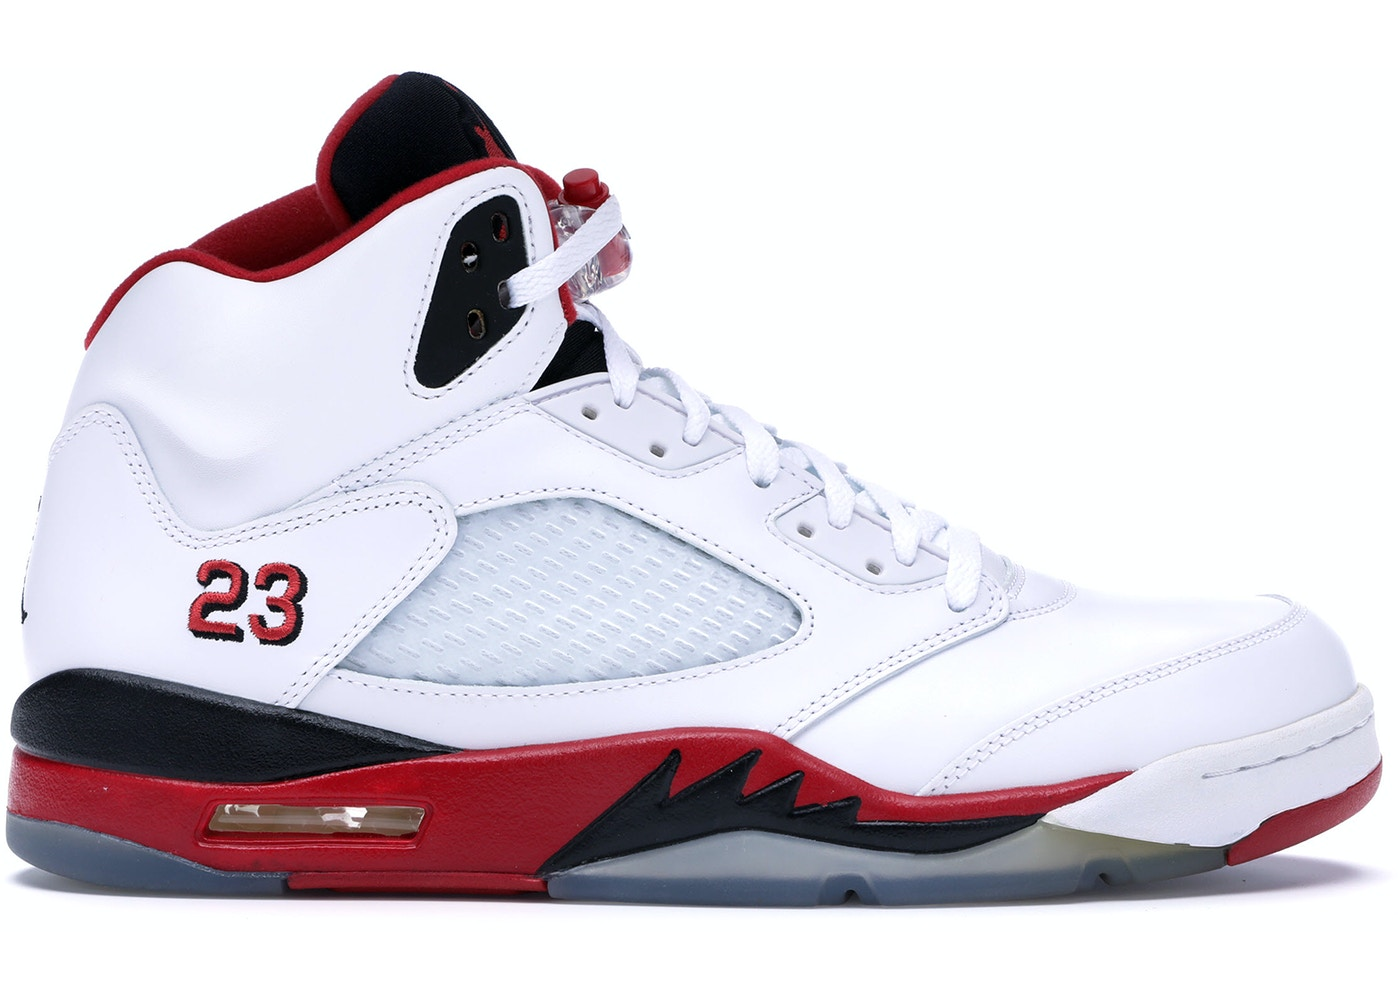 595988627d6fb5 Buy Air Jordan 5 Shoes   Deadstock Sneakers